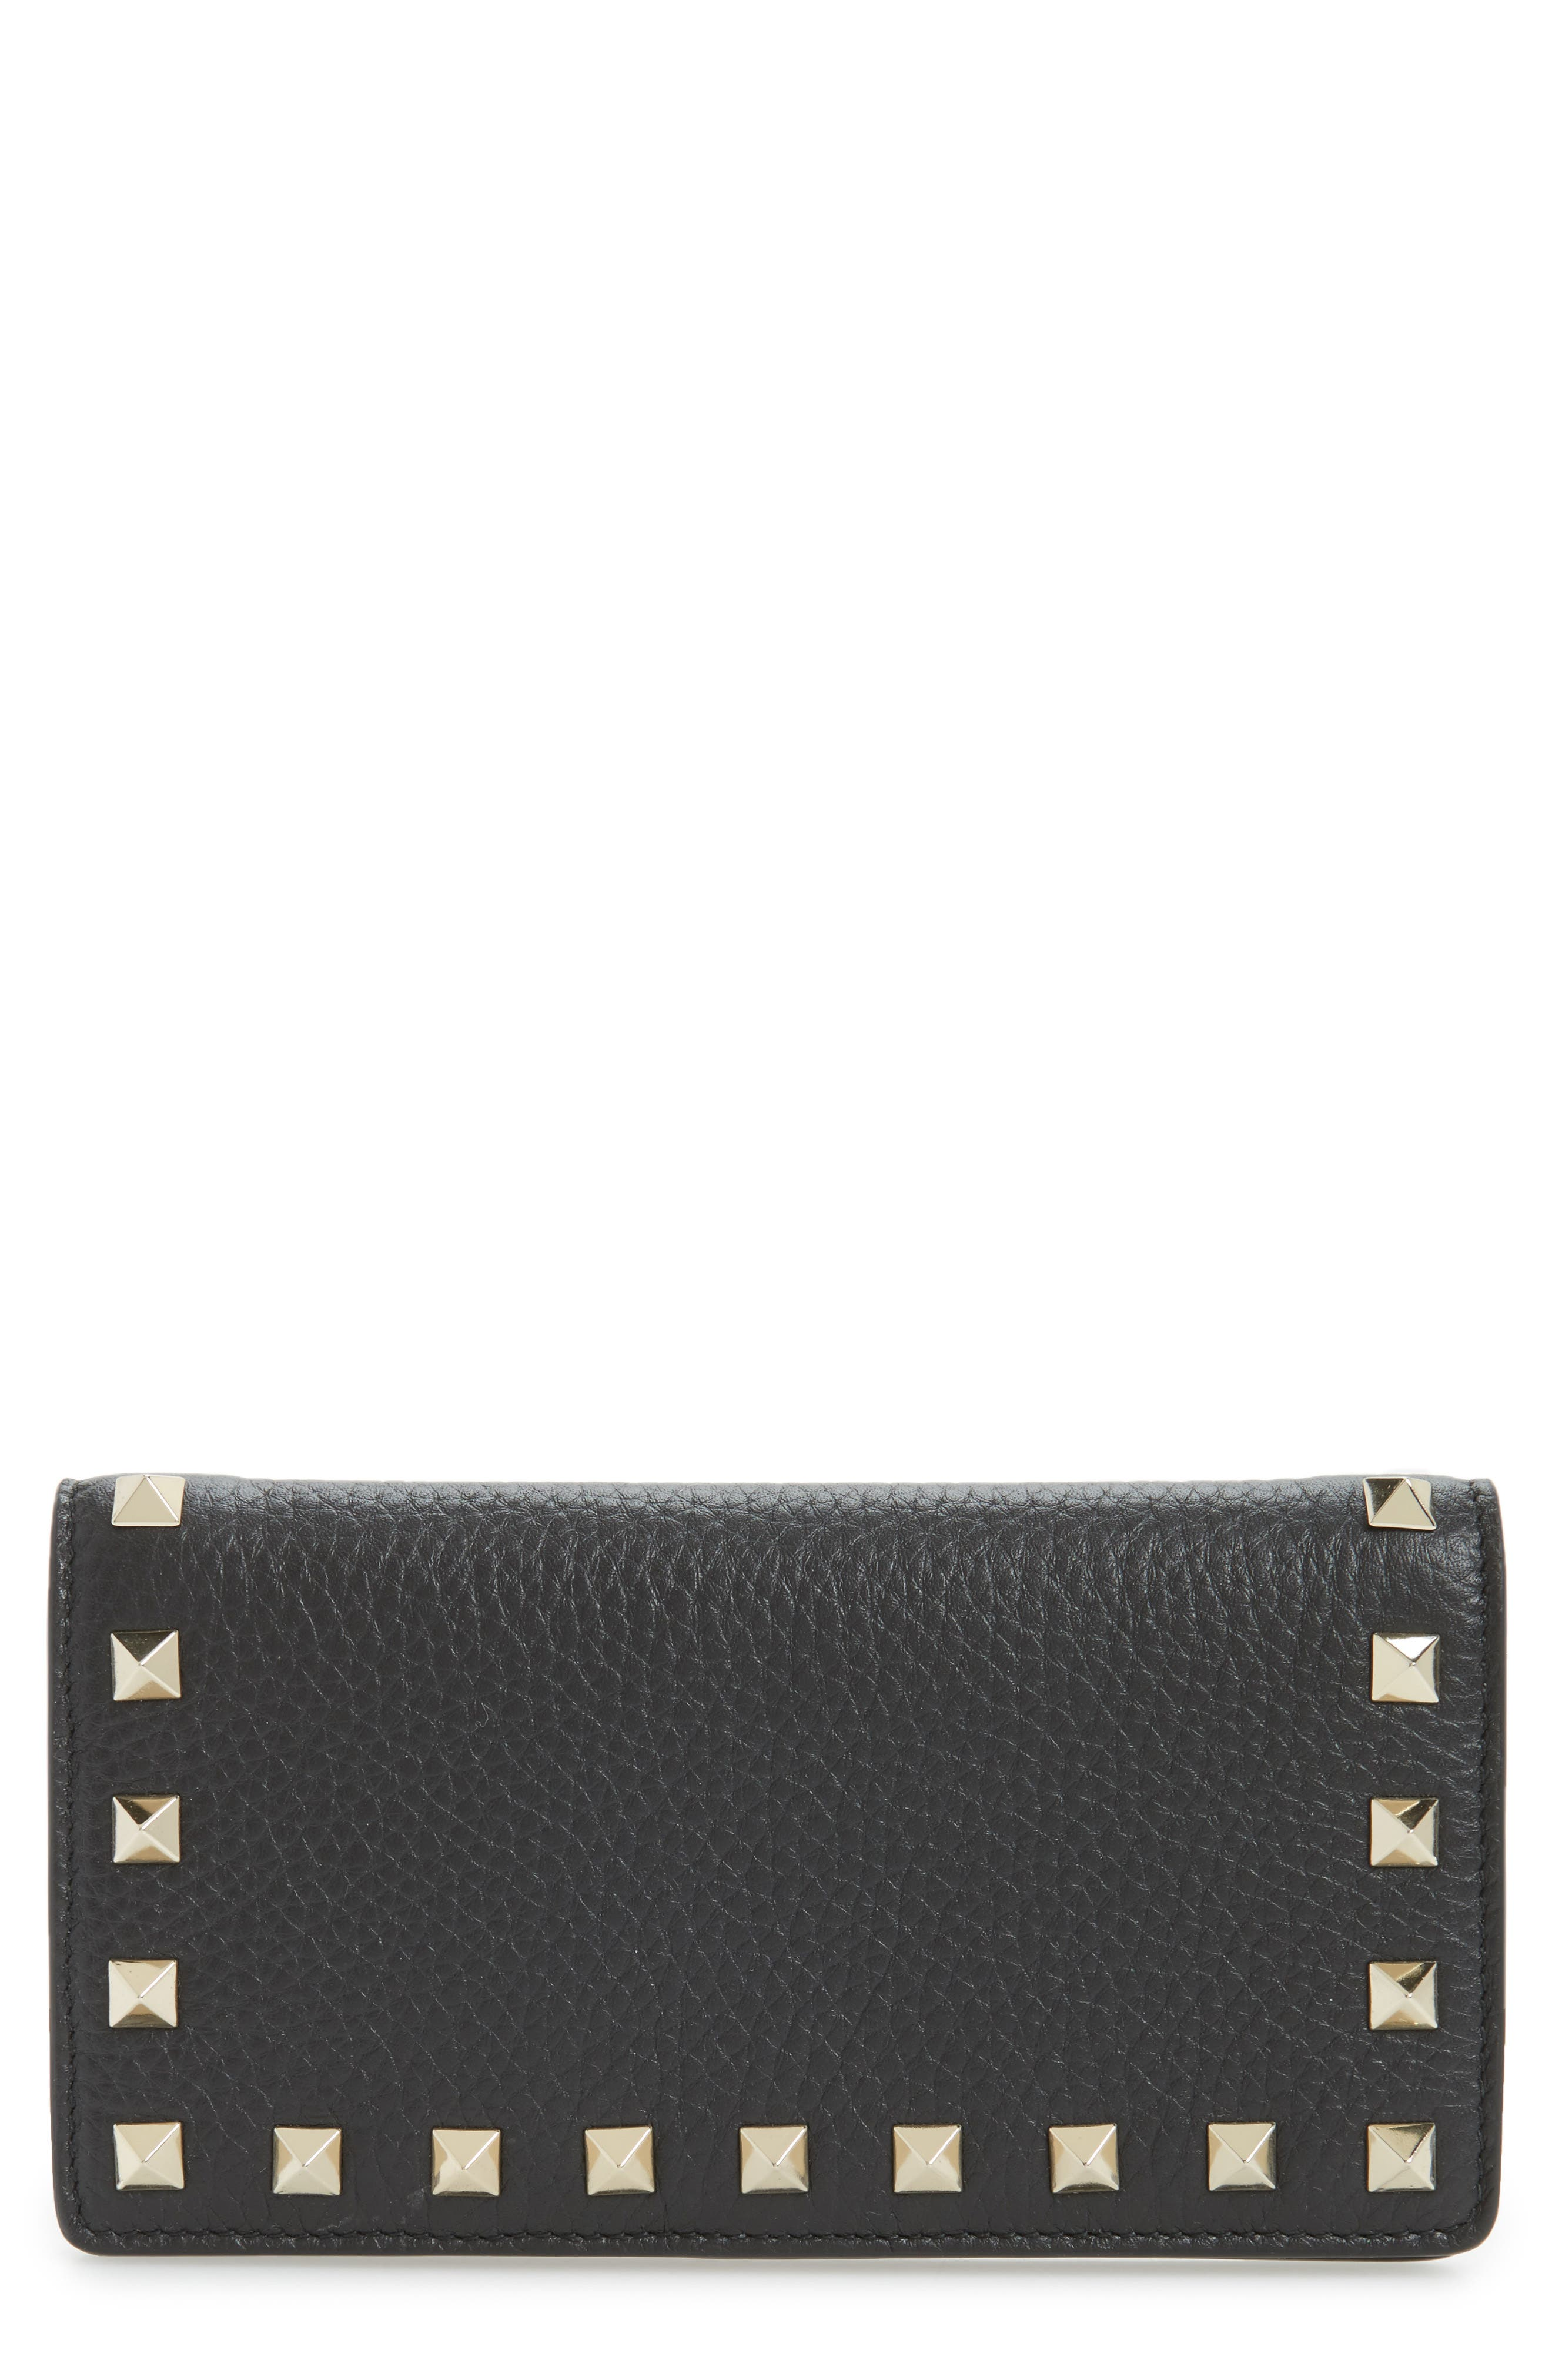 Rockstud Calfskin Leather Wallet,                             Main thumbnail 1, color,                             001